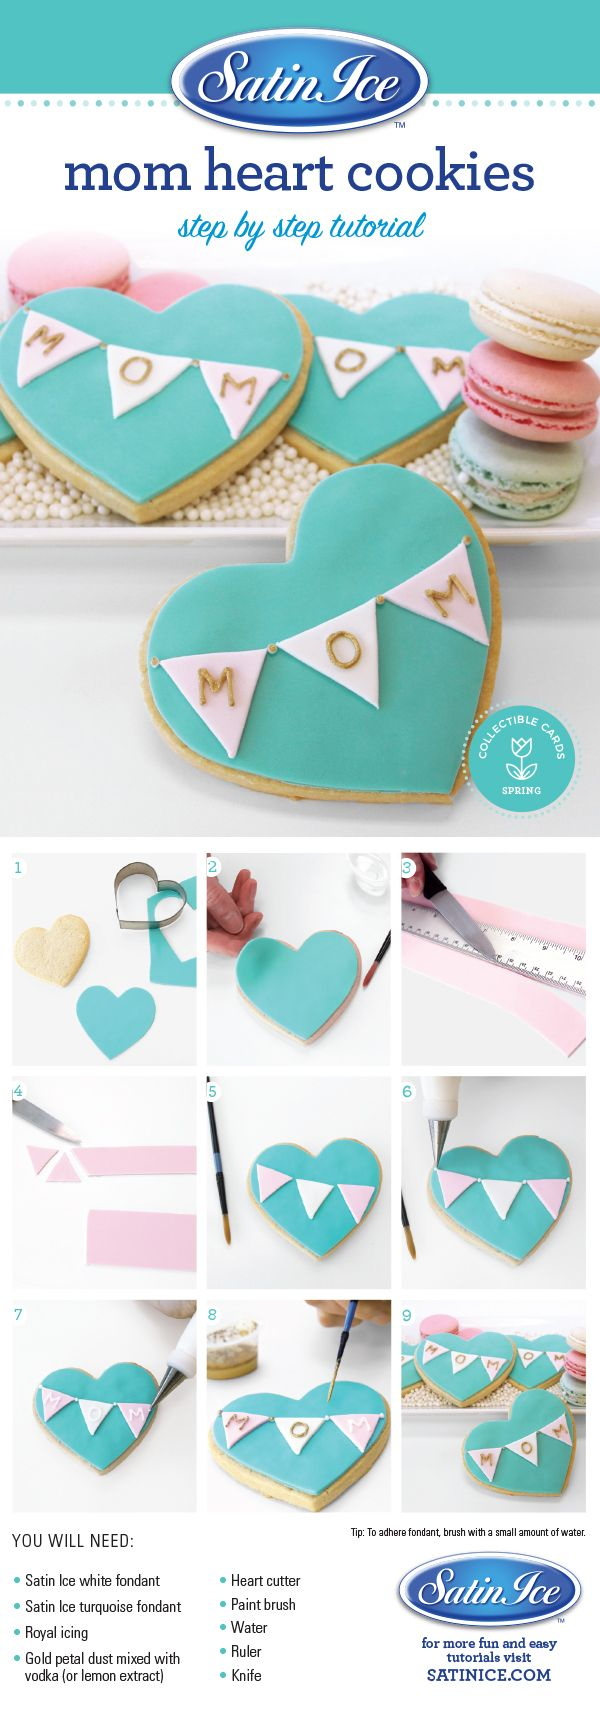 DIY fondant heart cookies for Mother's Day by Satin Ice!